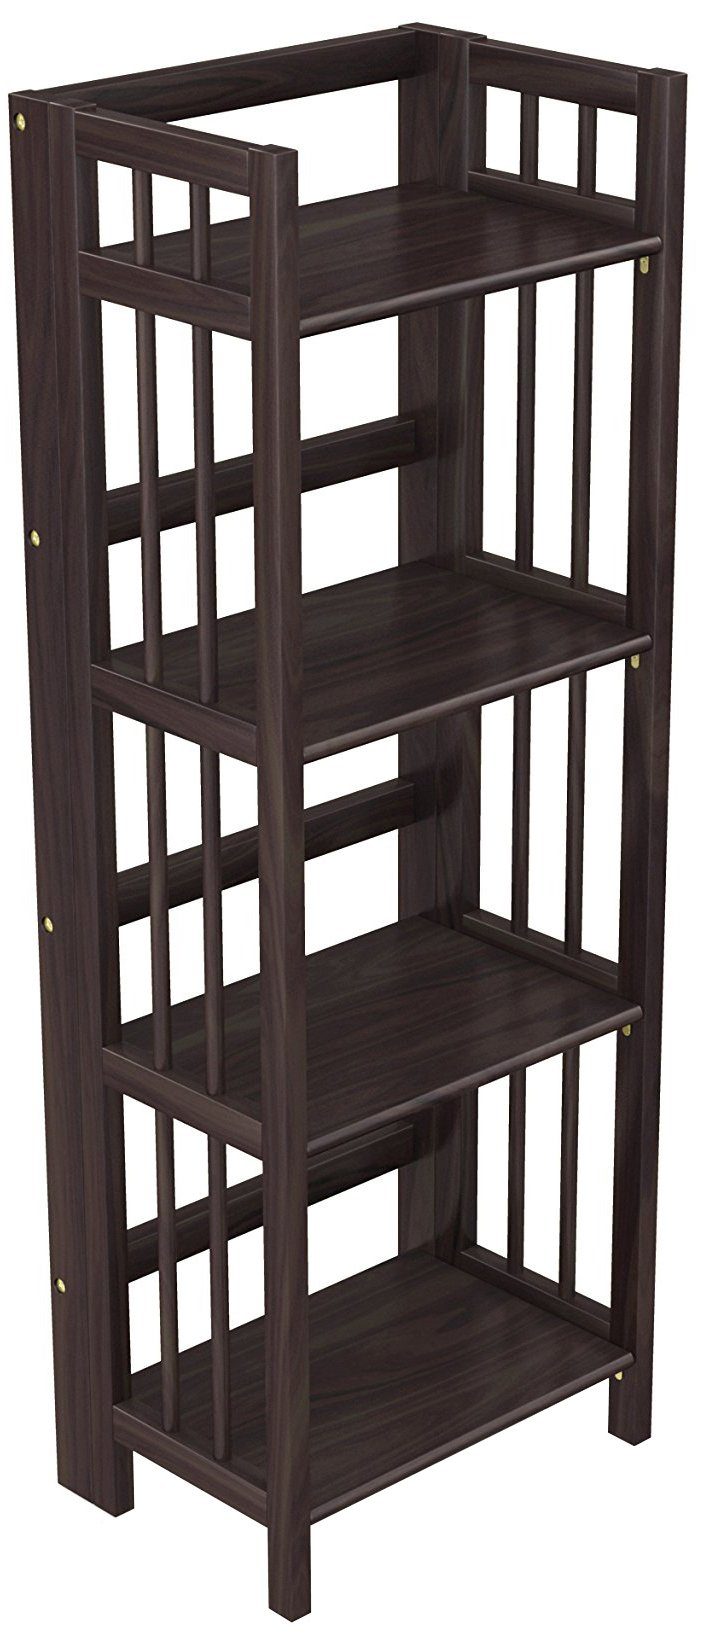 Stony Edge Folding Bookcase Easy Assembly Bookshelf For Home Office Storage 16 Espresso